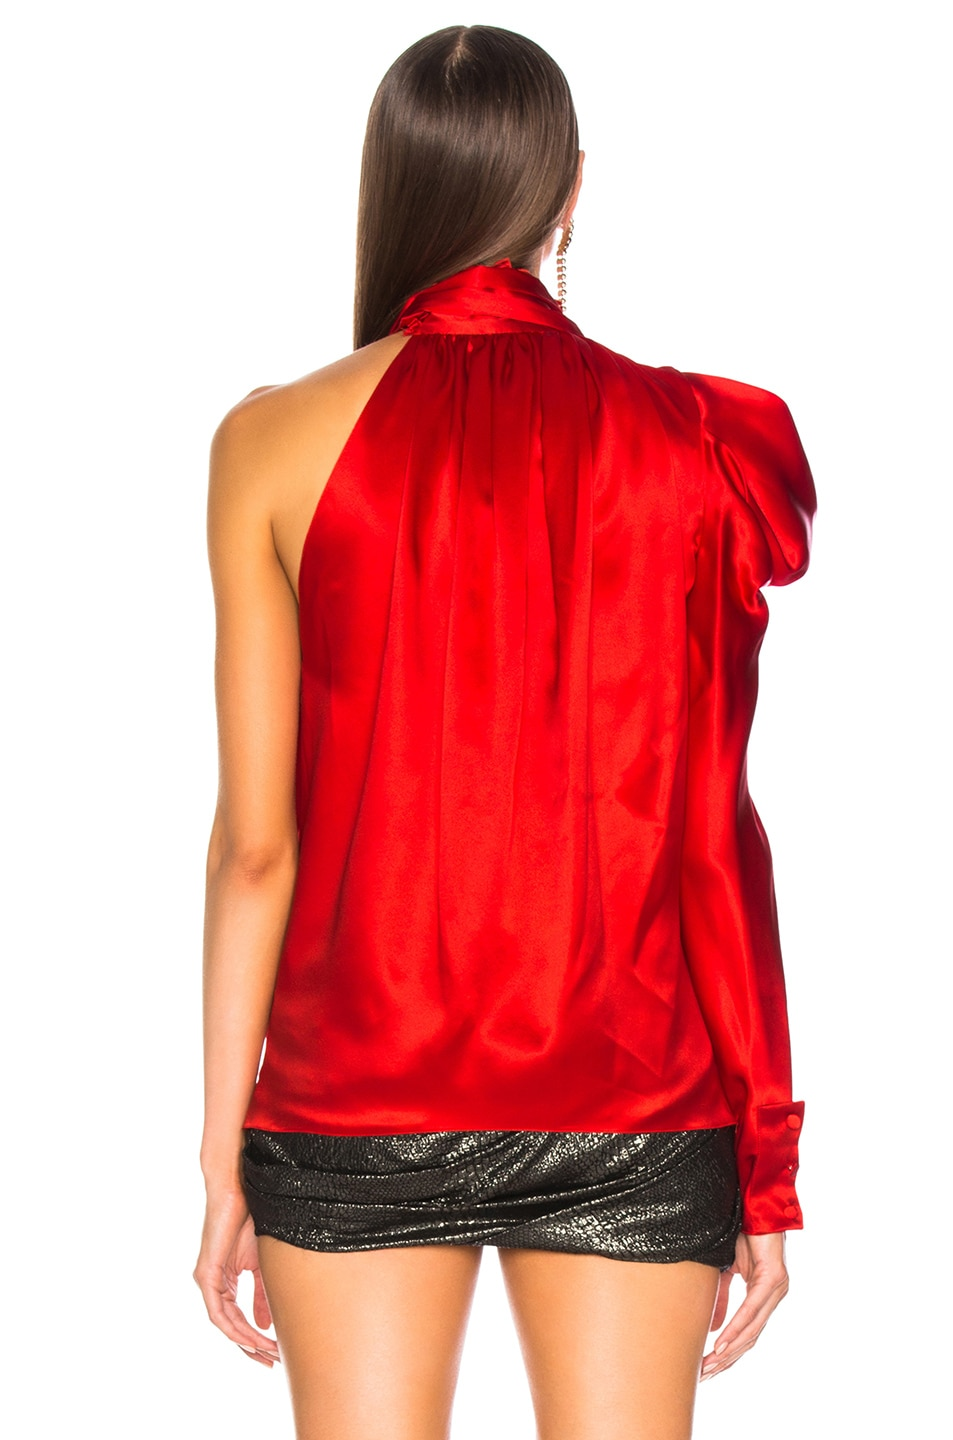 Image 5 of Redemption for FWRD One Shoulder Top in Red Satin